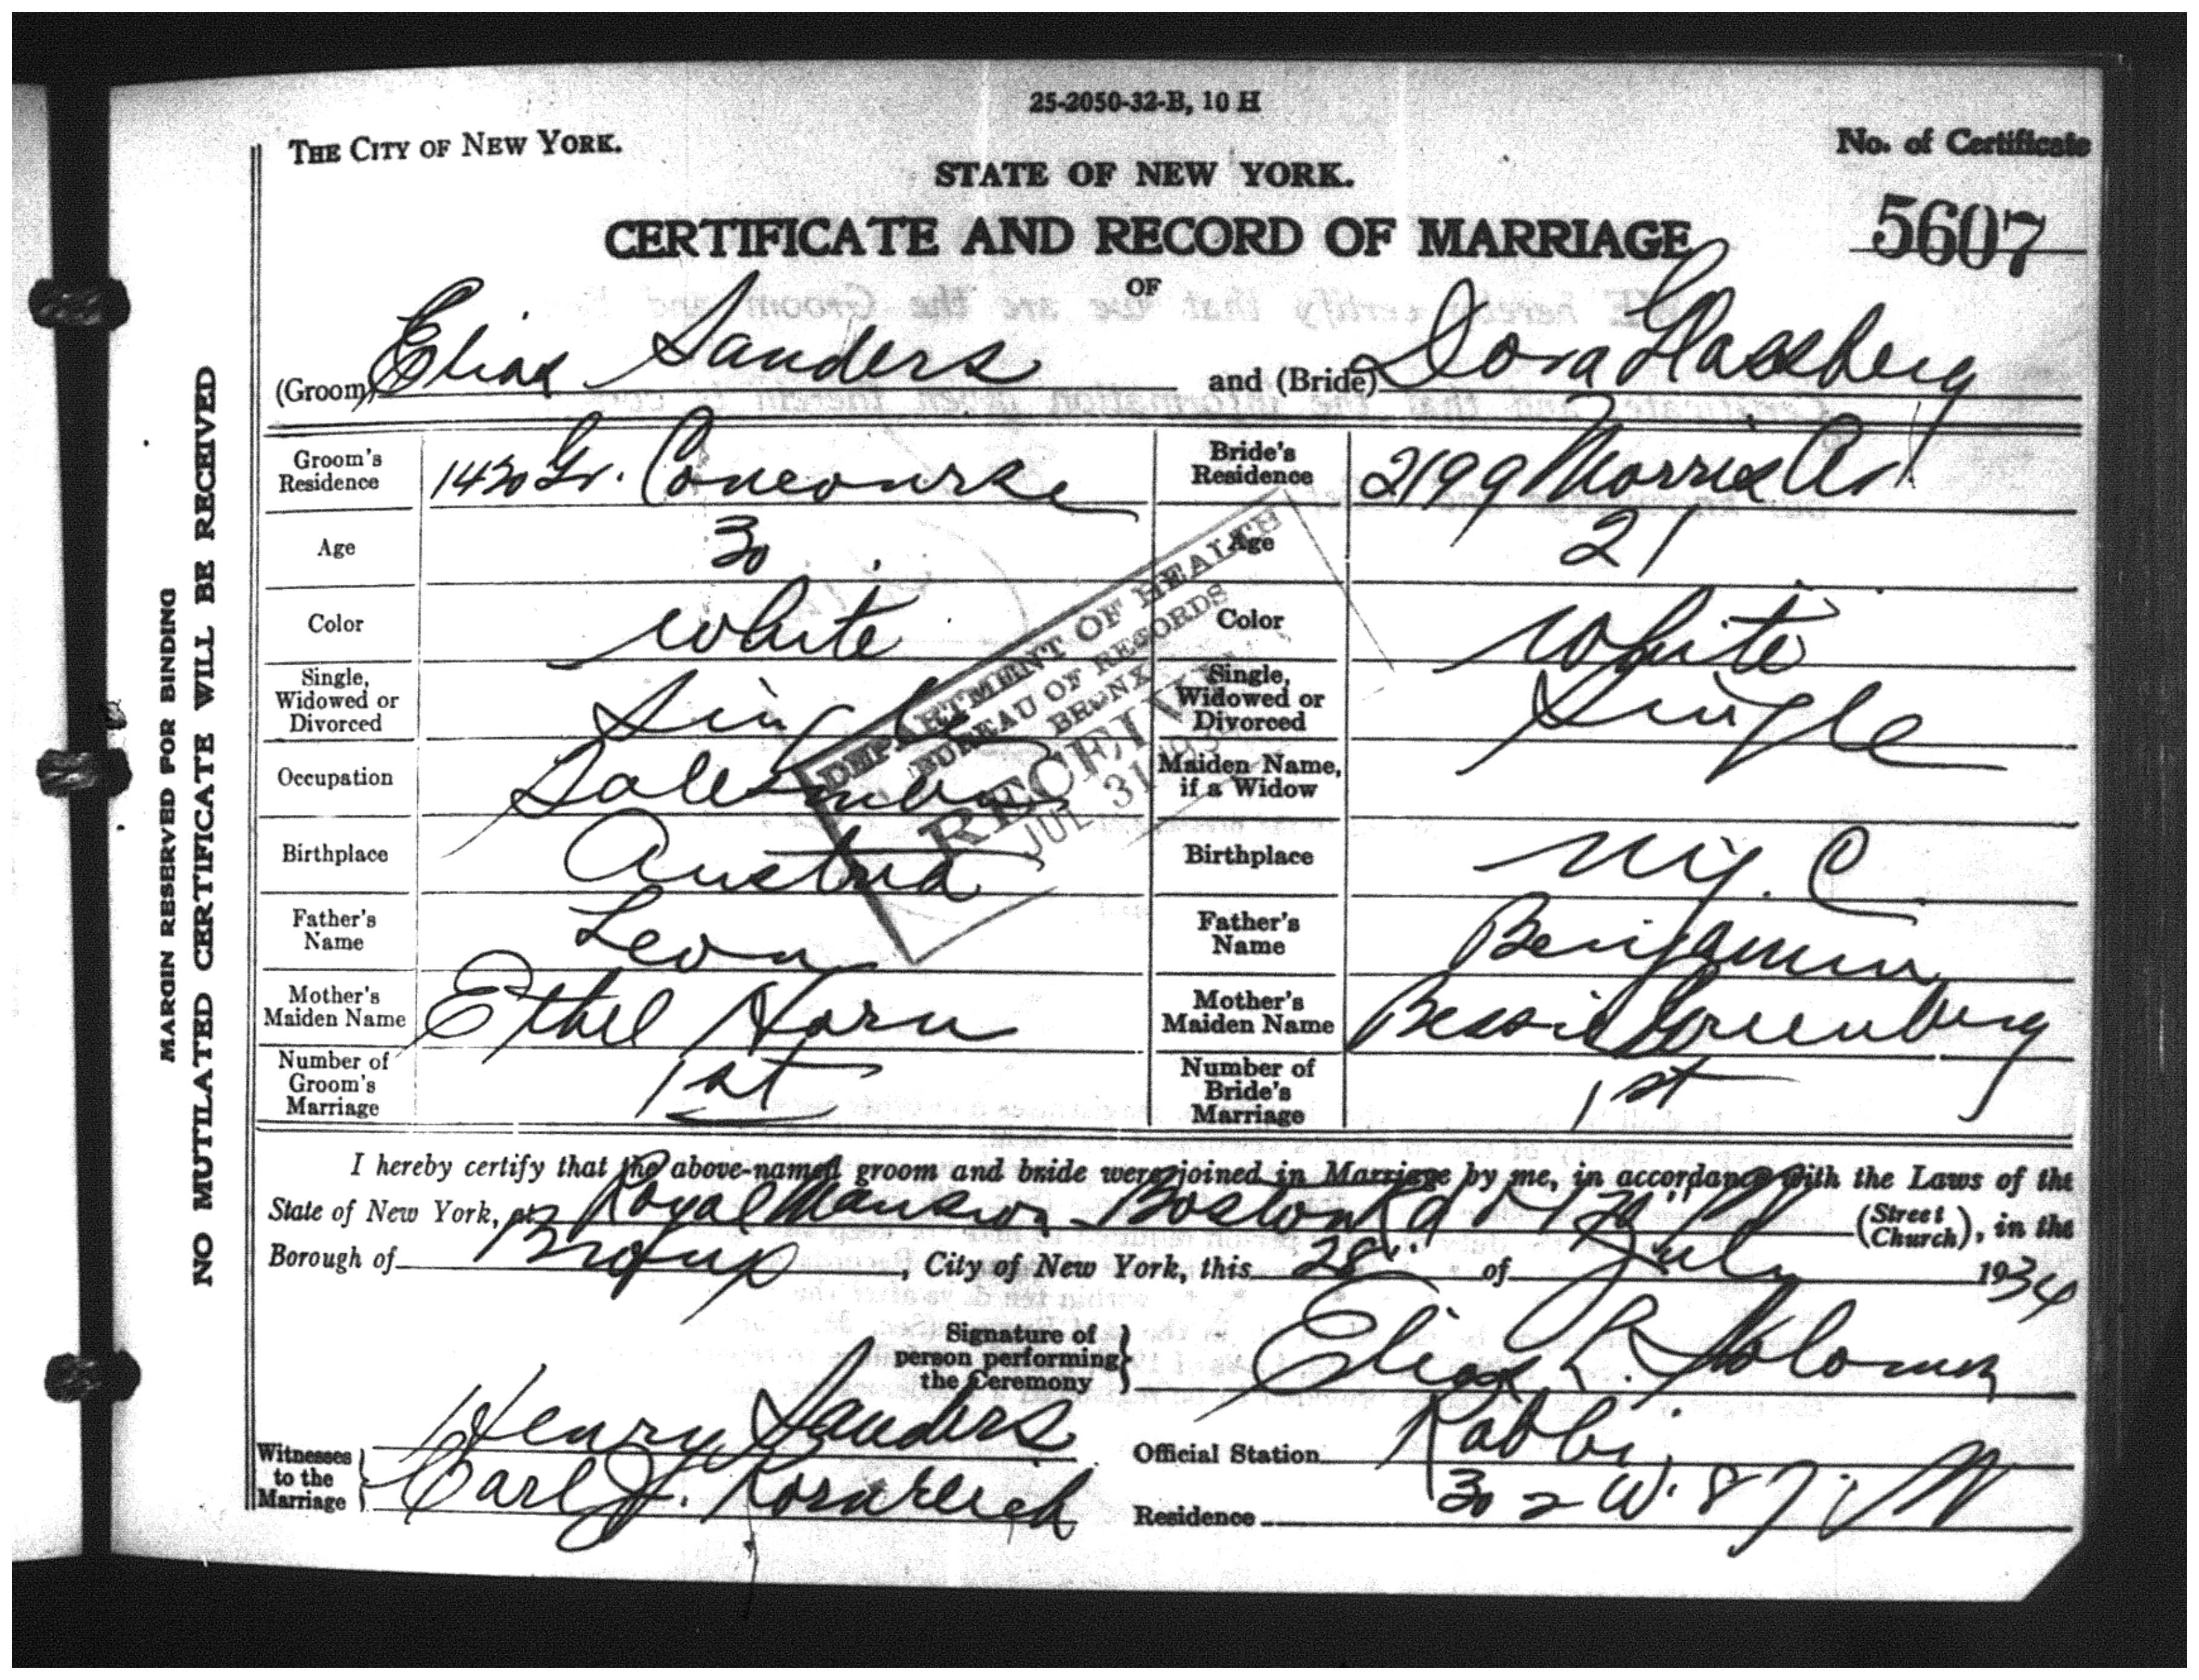 The genealogy of bernie sanders part 1 the ginger jewish nyc marriage certificate bronx county 28 july 1934 cert 5607 fhl yelopaper Images